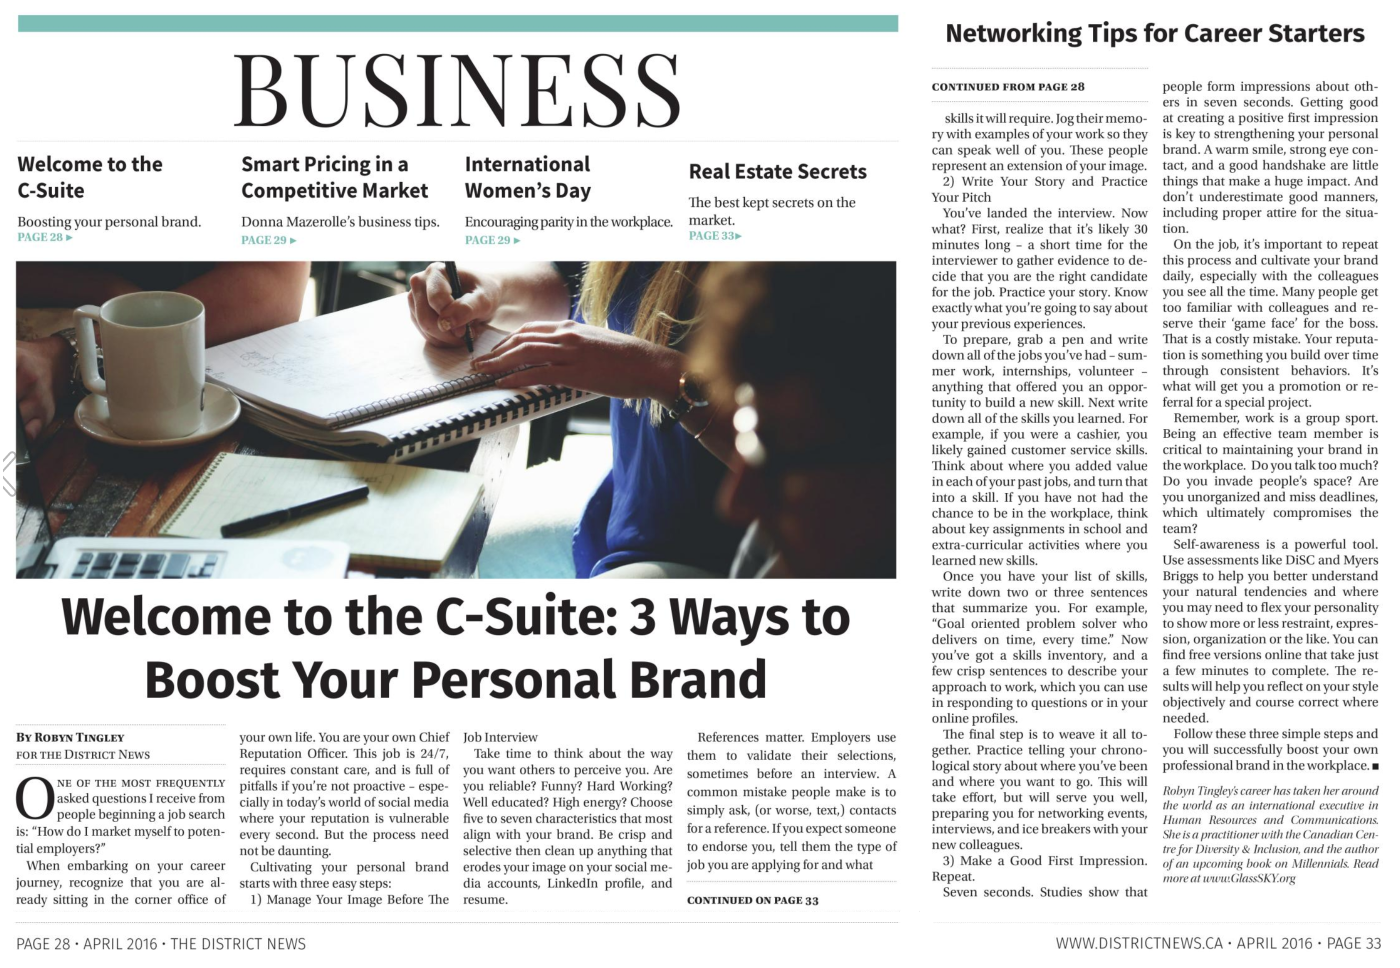 Welcome to the C-Suite – 3 Ways To Boost Your Personal Brand